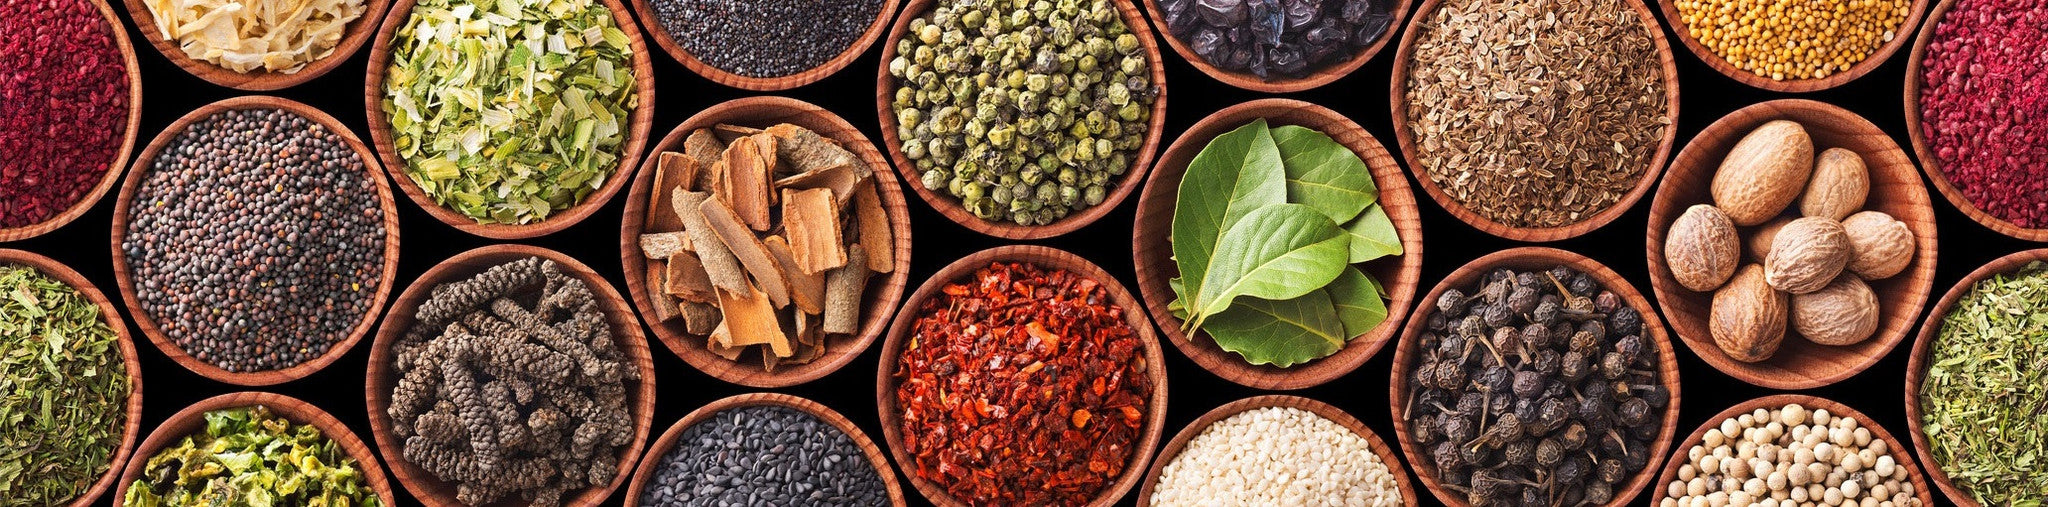 Spices and Blends